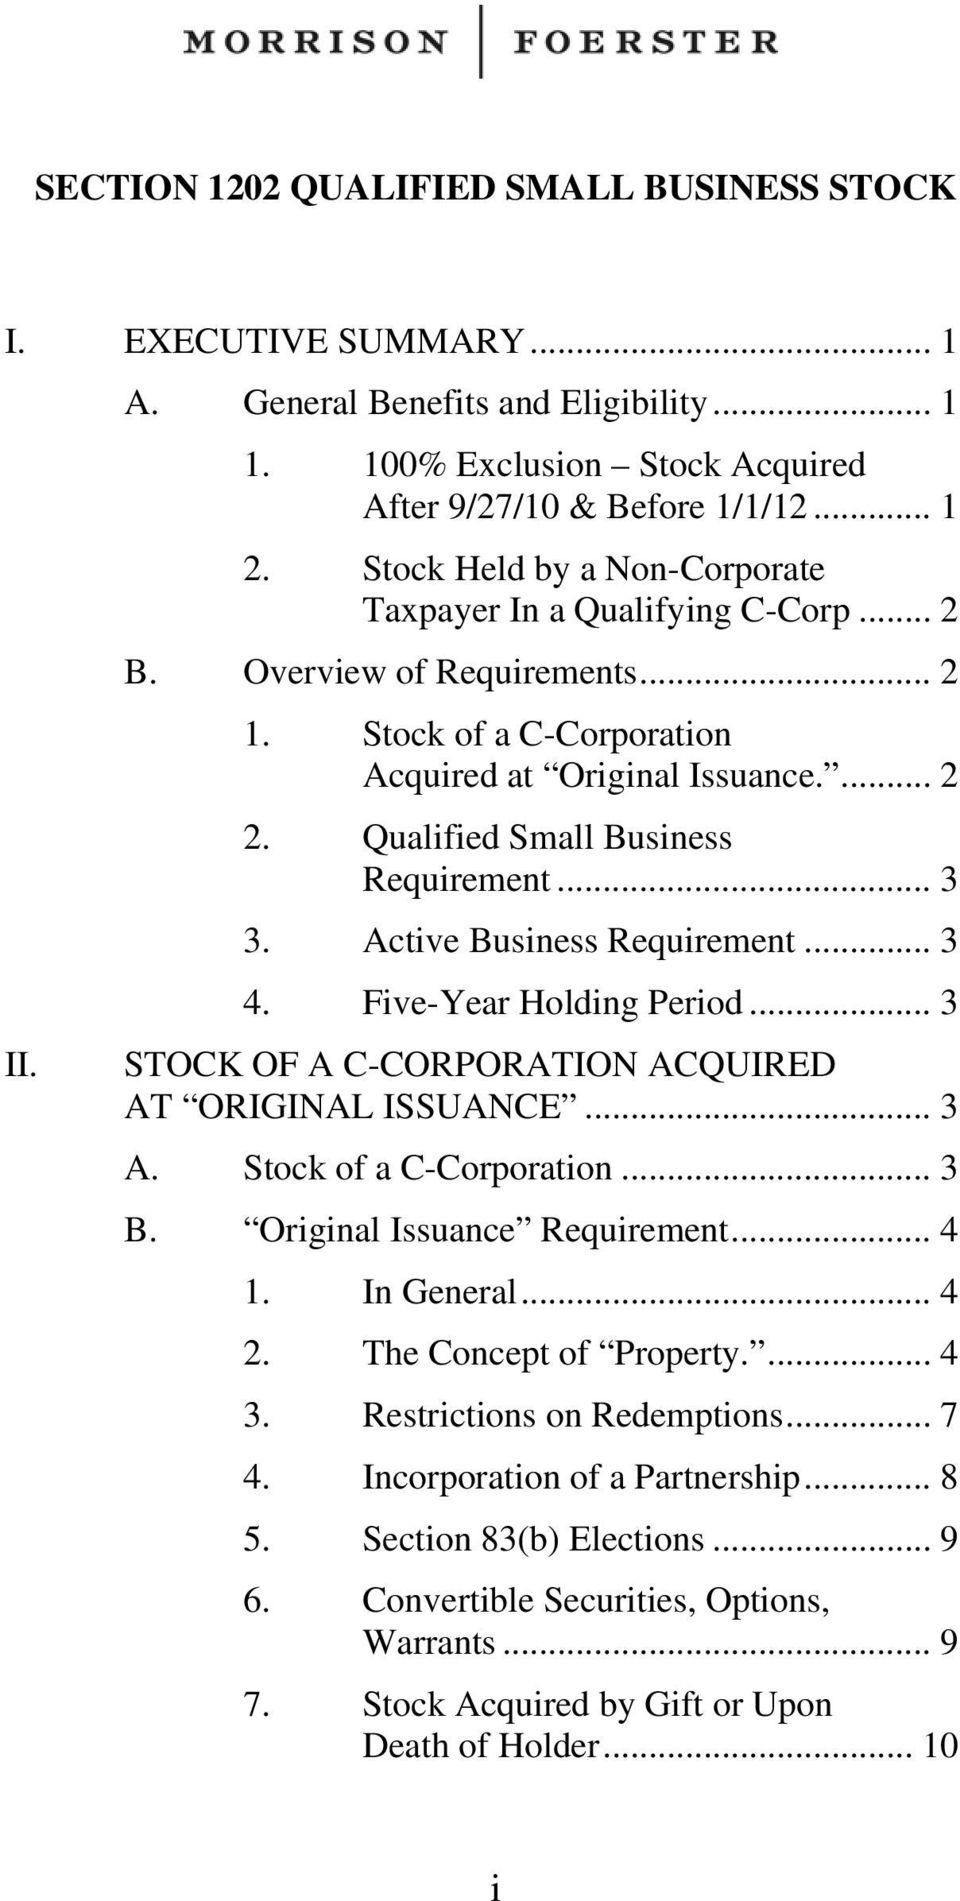 Irs 83b stock options